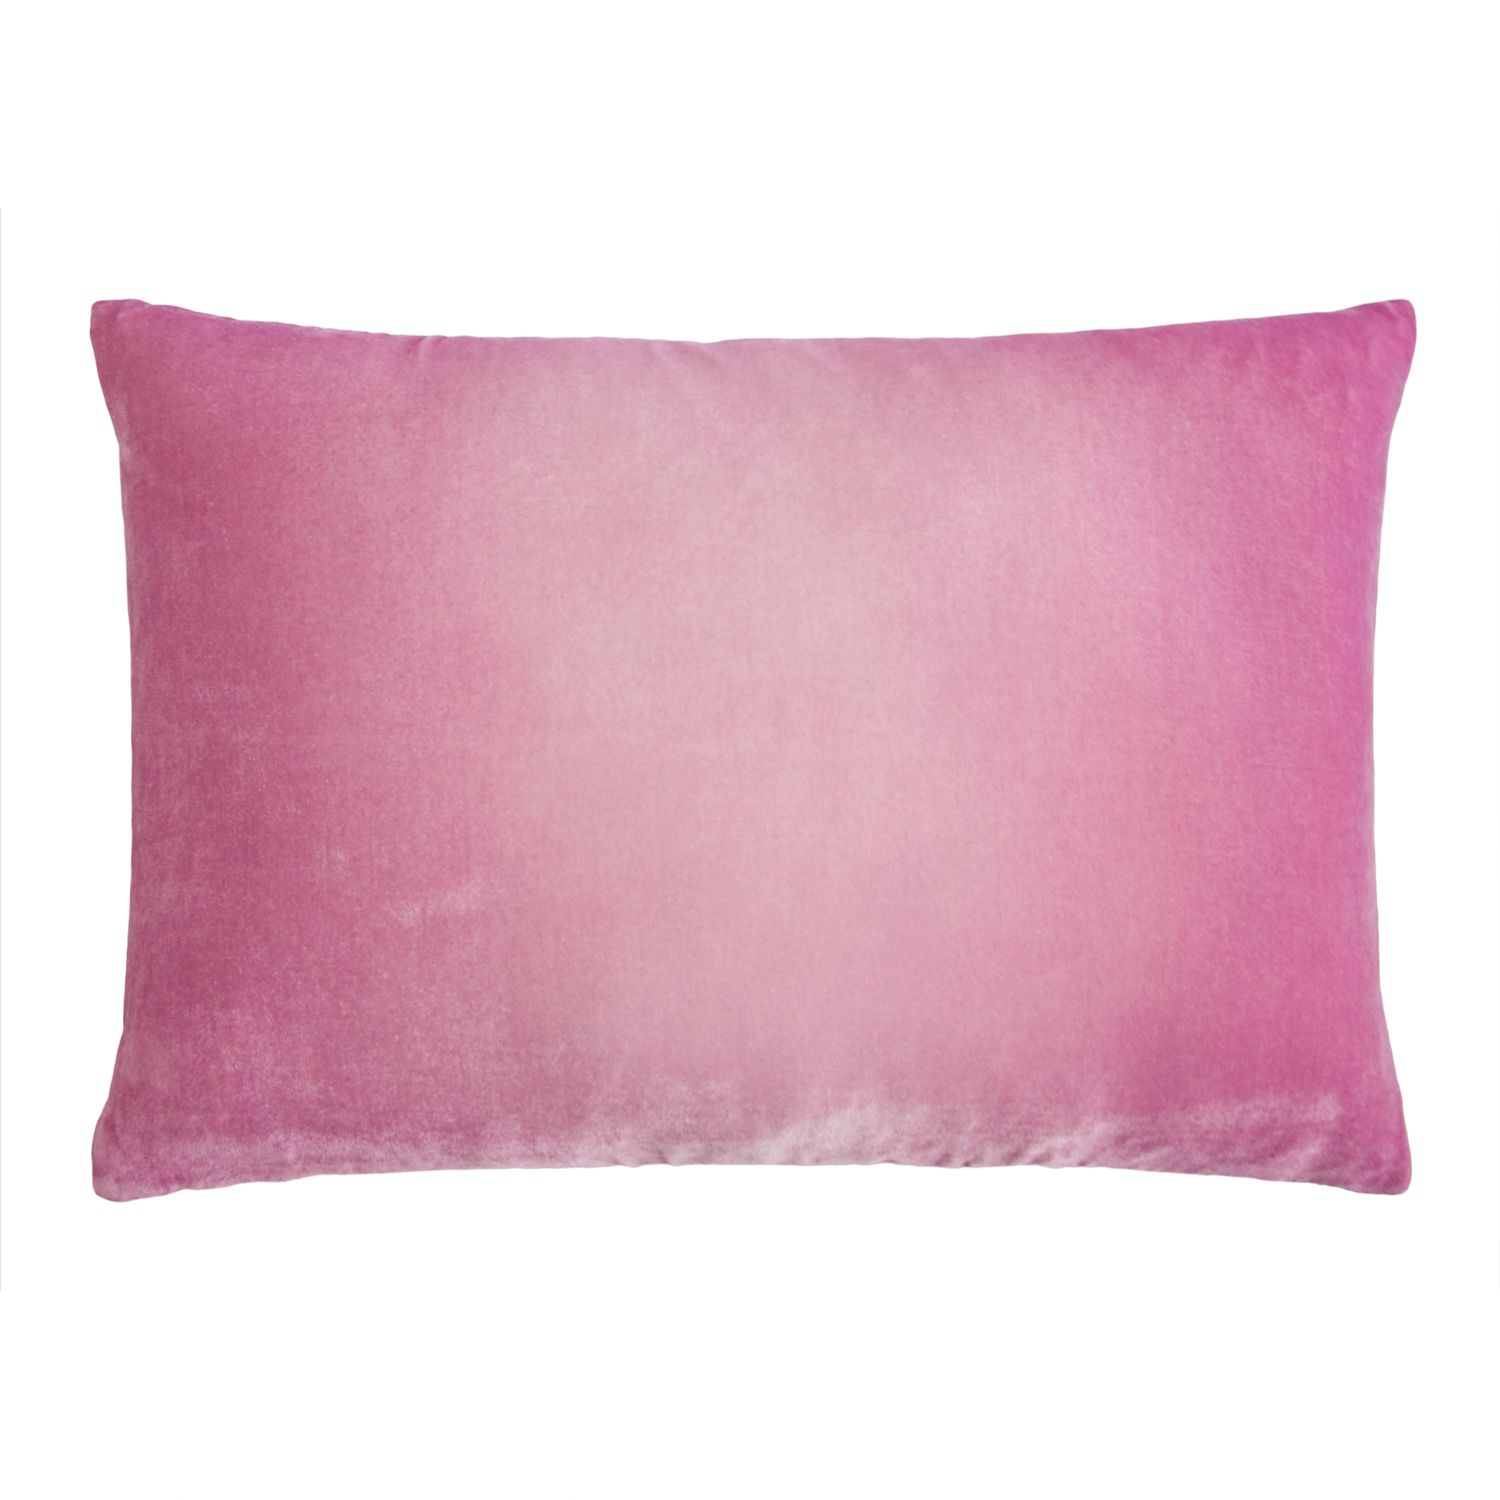 Unique Kevin OBrien Studio Ombre Solid Velvet Decorated Pillows VY92